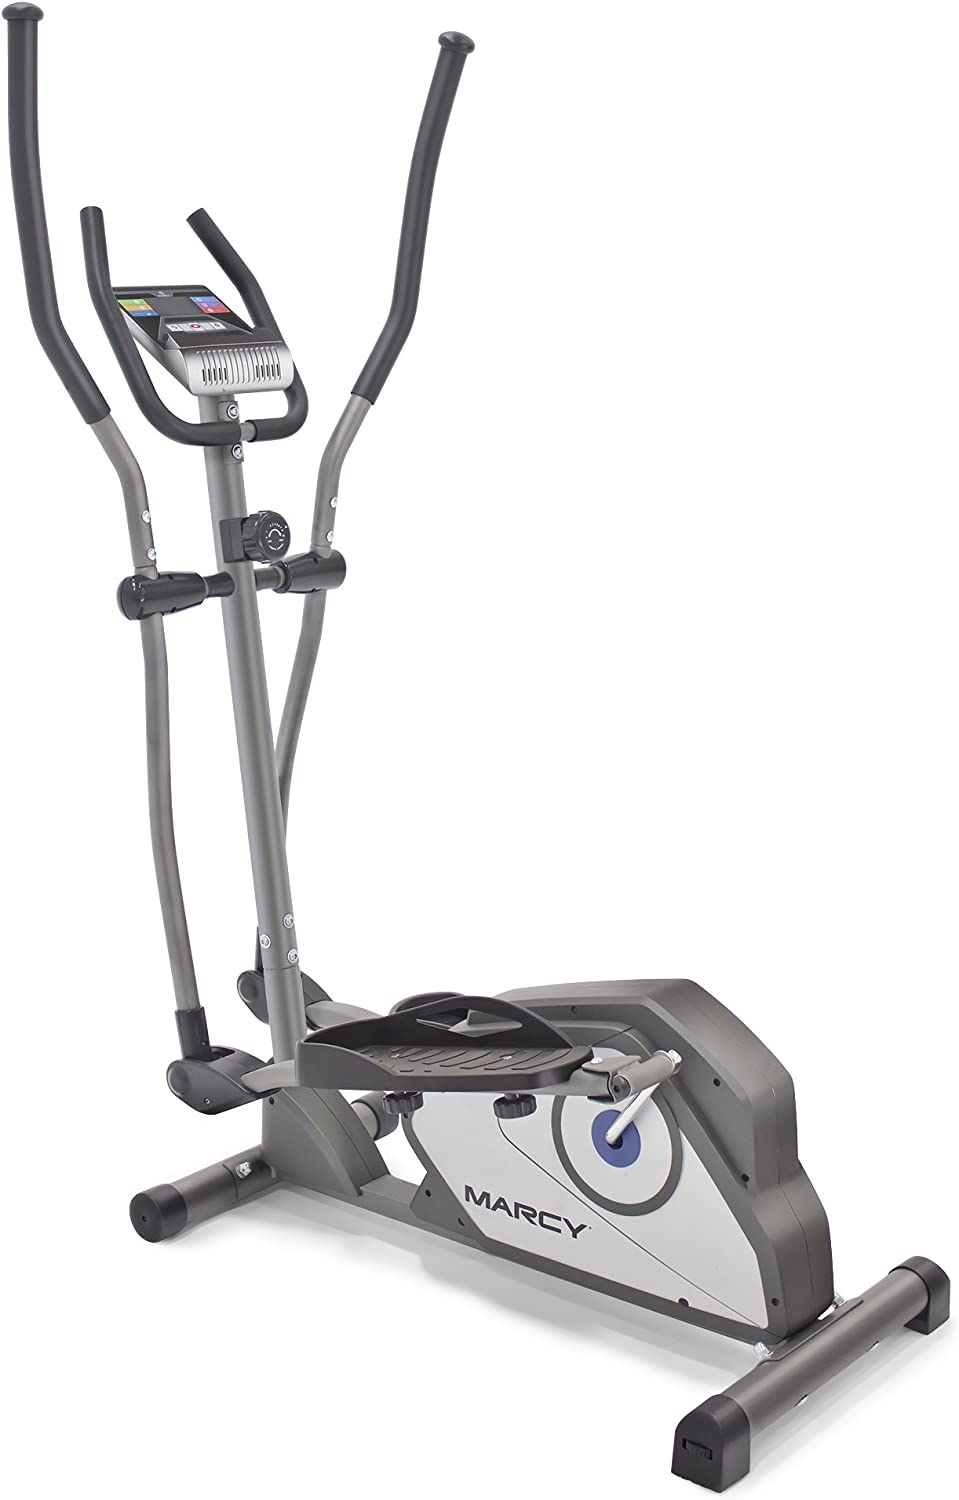 Marcy Magnetic Elliptical Trainer Cardio Workout Machine